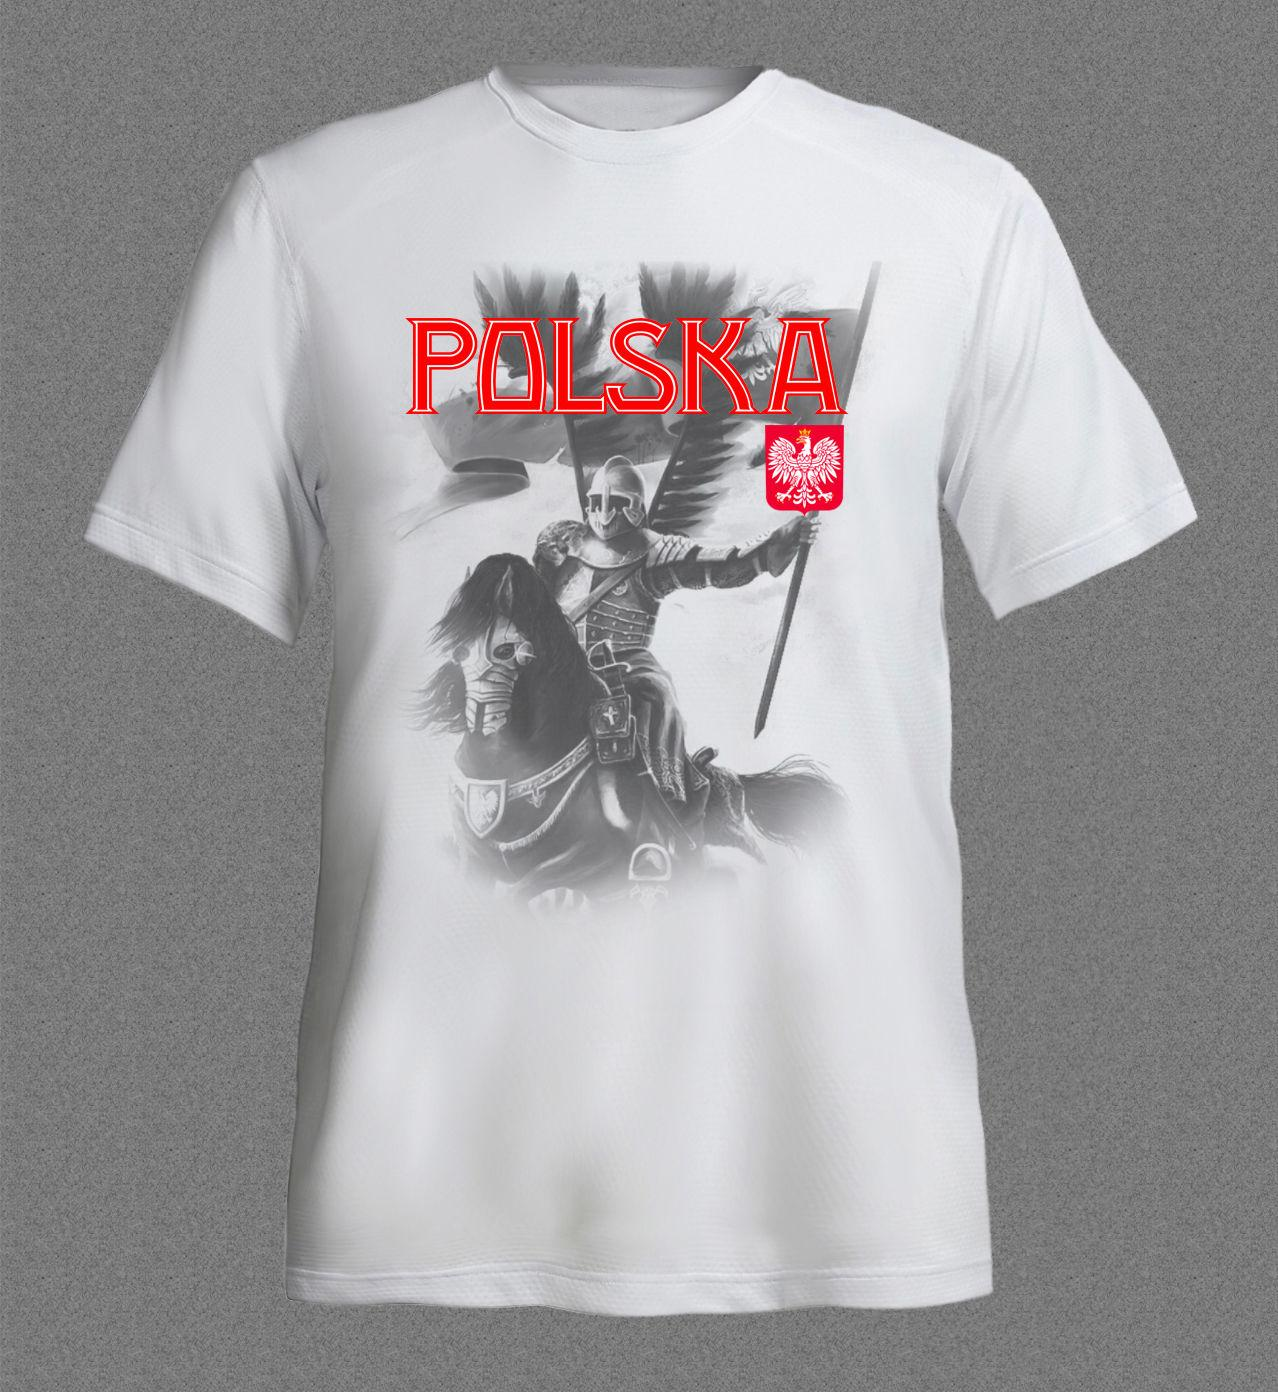 f6e1ac6a5 Fashion Men T Shirt POLAND POLSKA HUSARIA FOOTBALLER SOCCERER White T Shirt  Hot Selling 100 % Cotton Tee Shirts T Shirt On Shirt Online Tee Shirts  Shopping ...